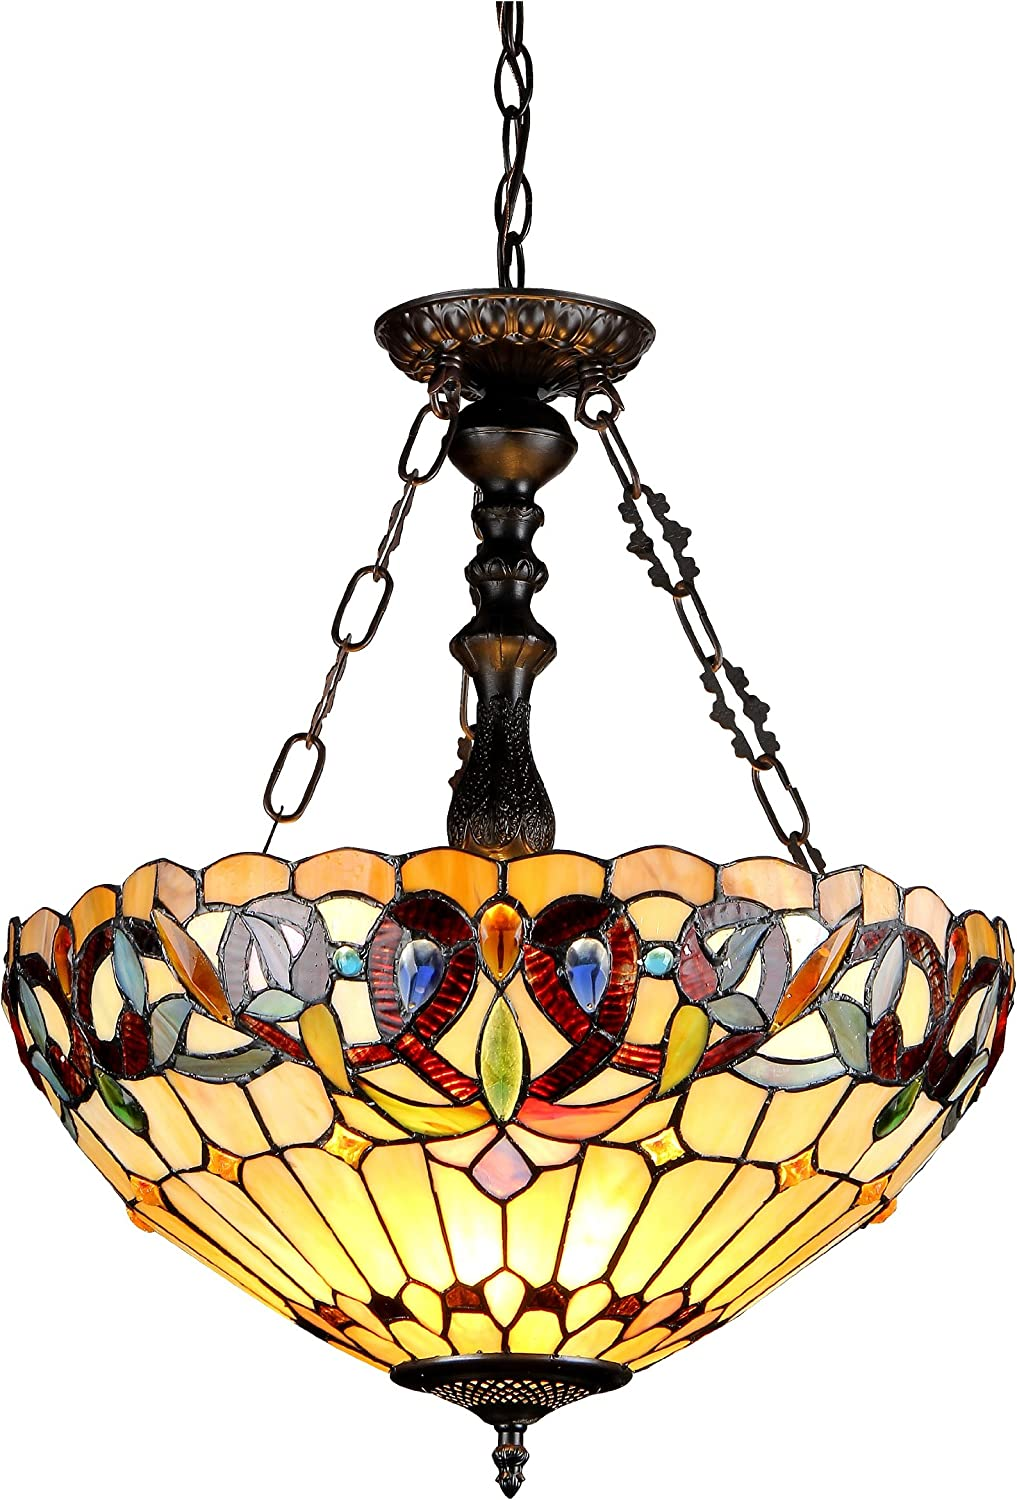 Chloe Lighting CH33353VR18-UH3 Serenity Tiffany-Style Victorian 3-Light Inverted Ceiling Pendant with Shade, 24.7 x 18.1 x 18.1 , Bronze